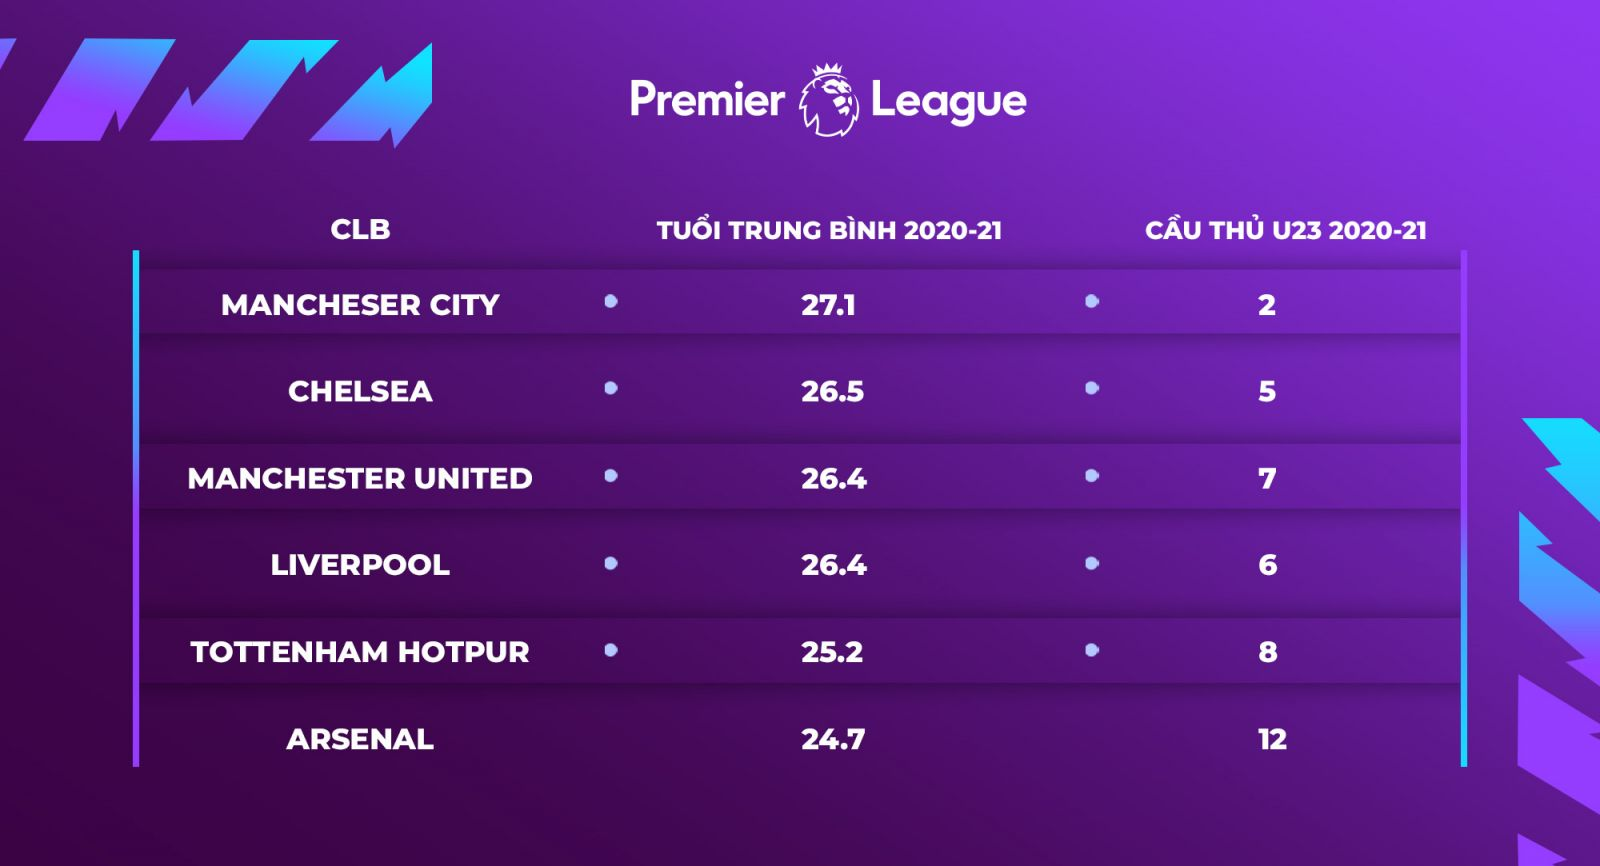 Average age and number of young players on the payroll of the Big 6 Premier League 2021-22